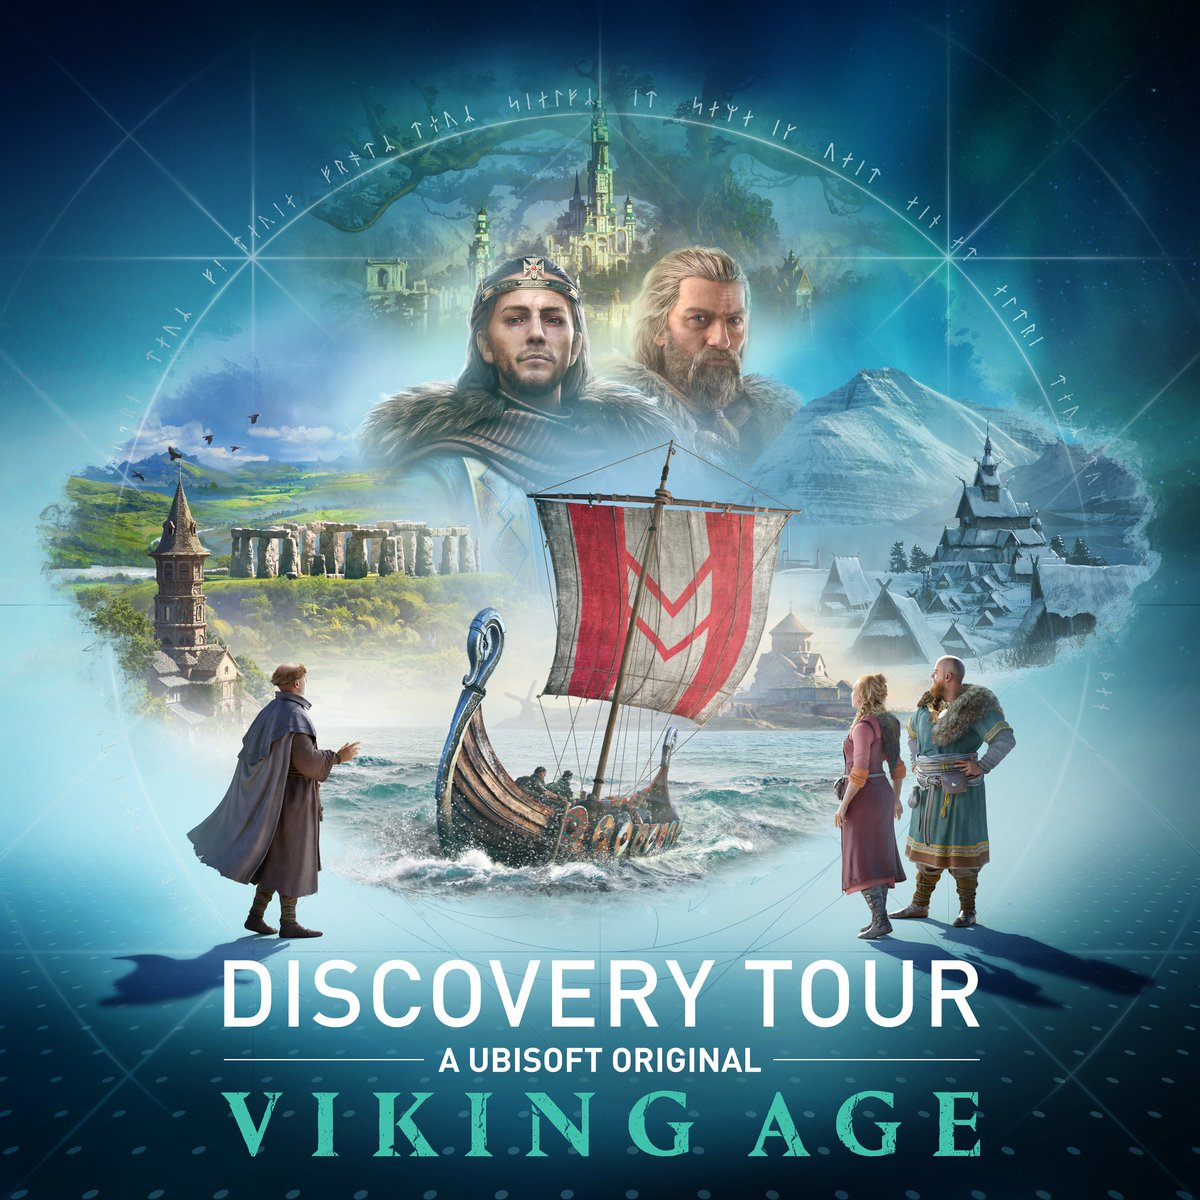 Assassin's Creed's Discovery Tour allows you to experience Viking history like never before!   This new game mode can be a powerful educational tool. @BBCClick chats with our devs and the people bringing the experience to classrooms in the UK.  📑 https://t.co/XphBUBj2rE https://t.co/UNavAn27oD